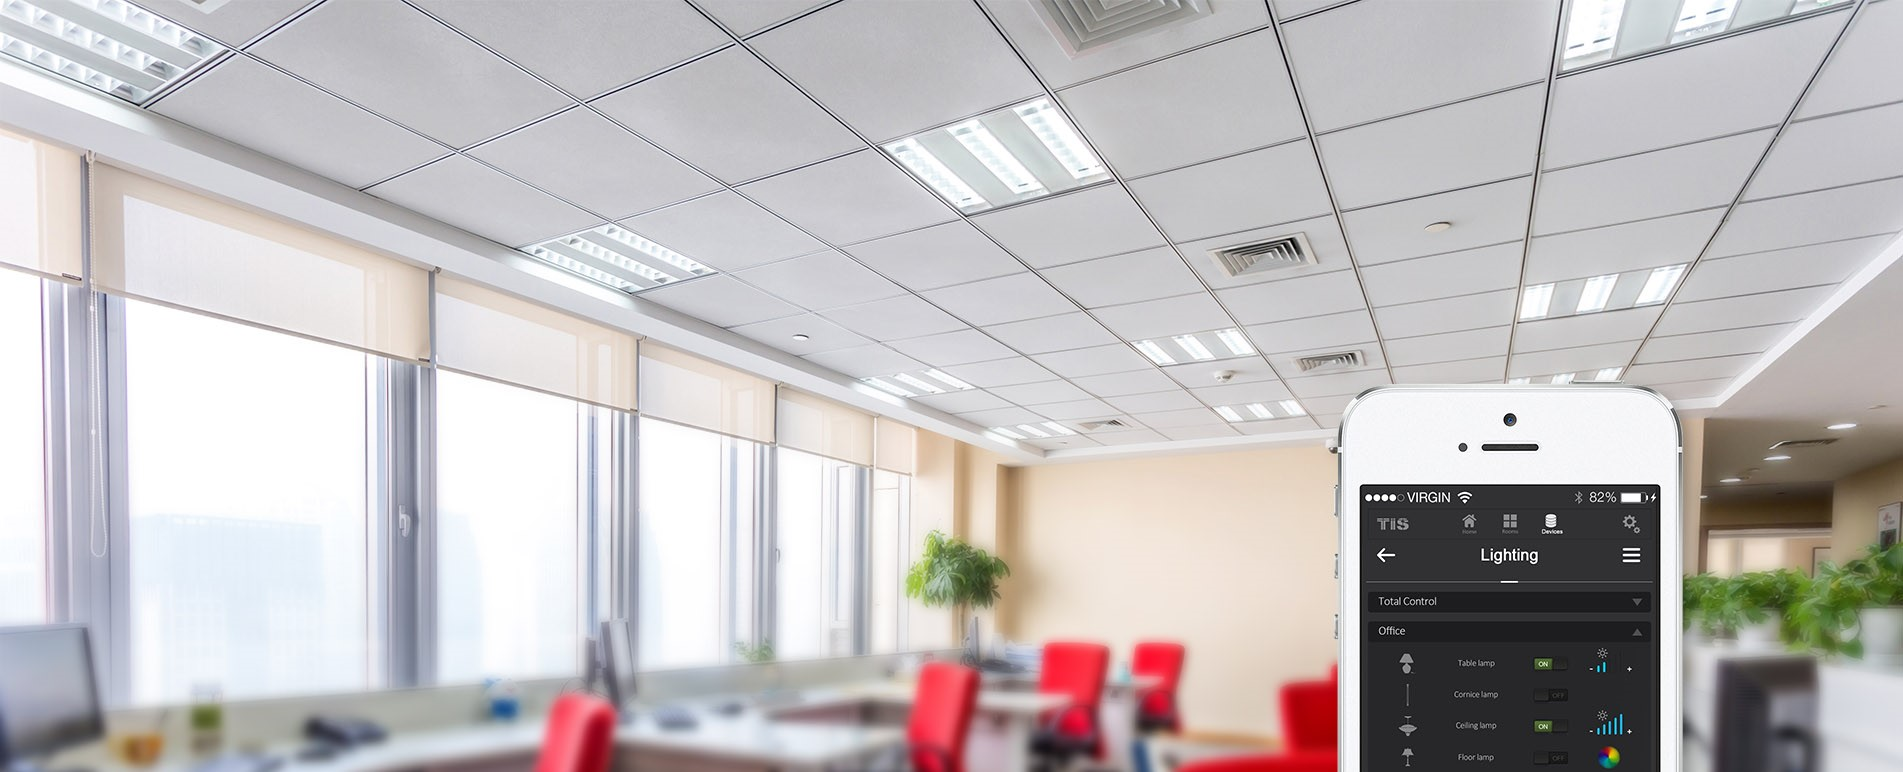 Control your florescent lights in commercial building - TIS